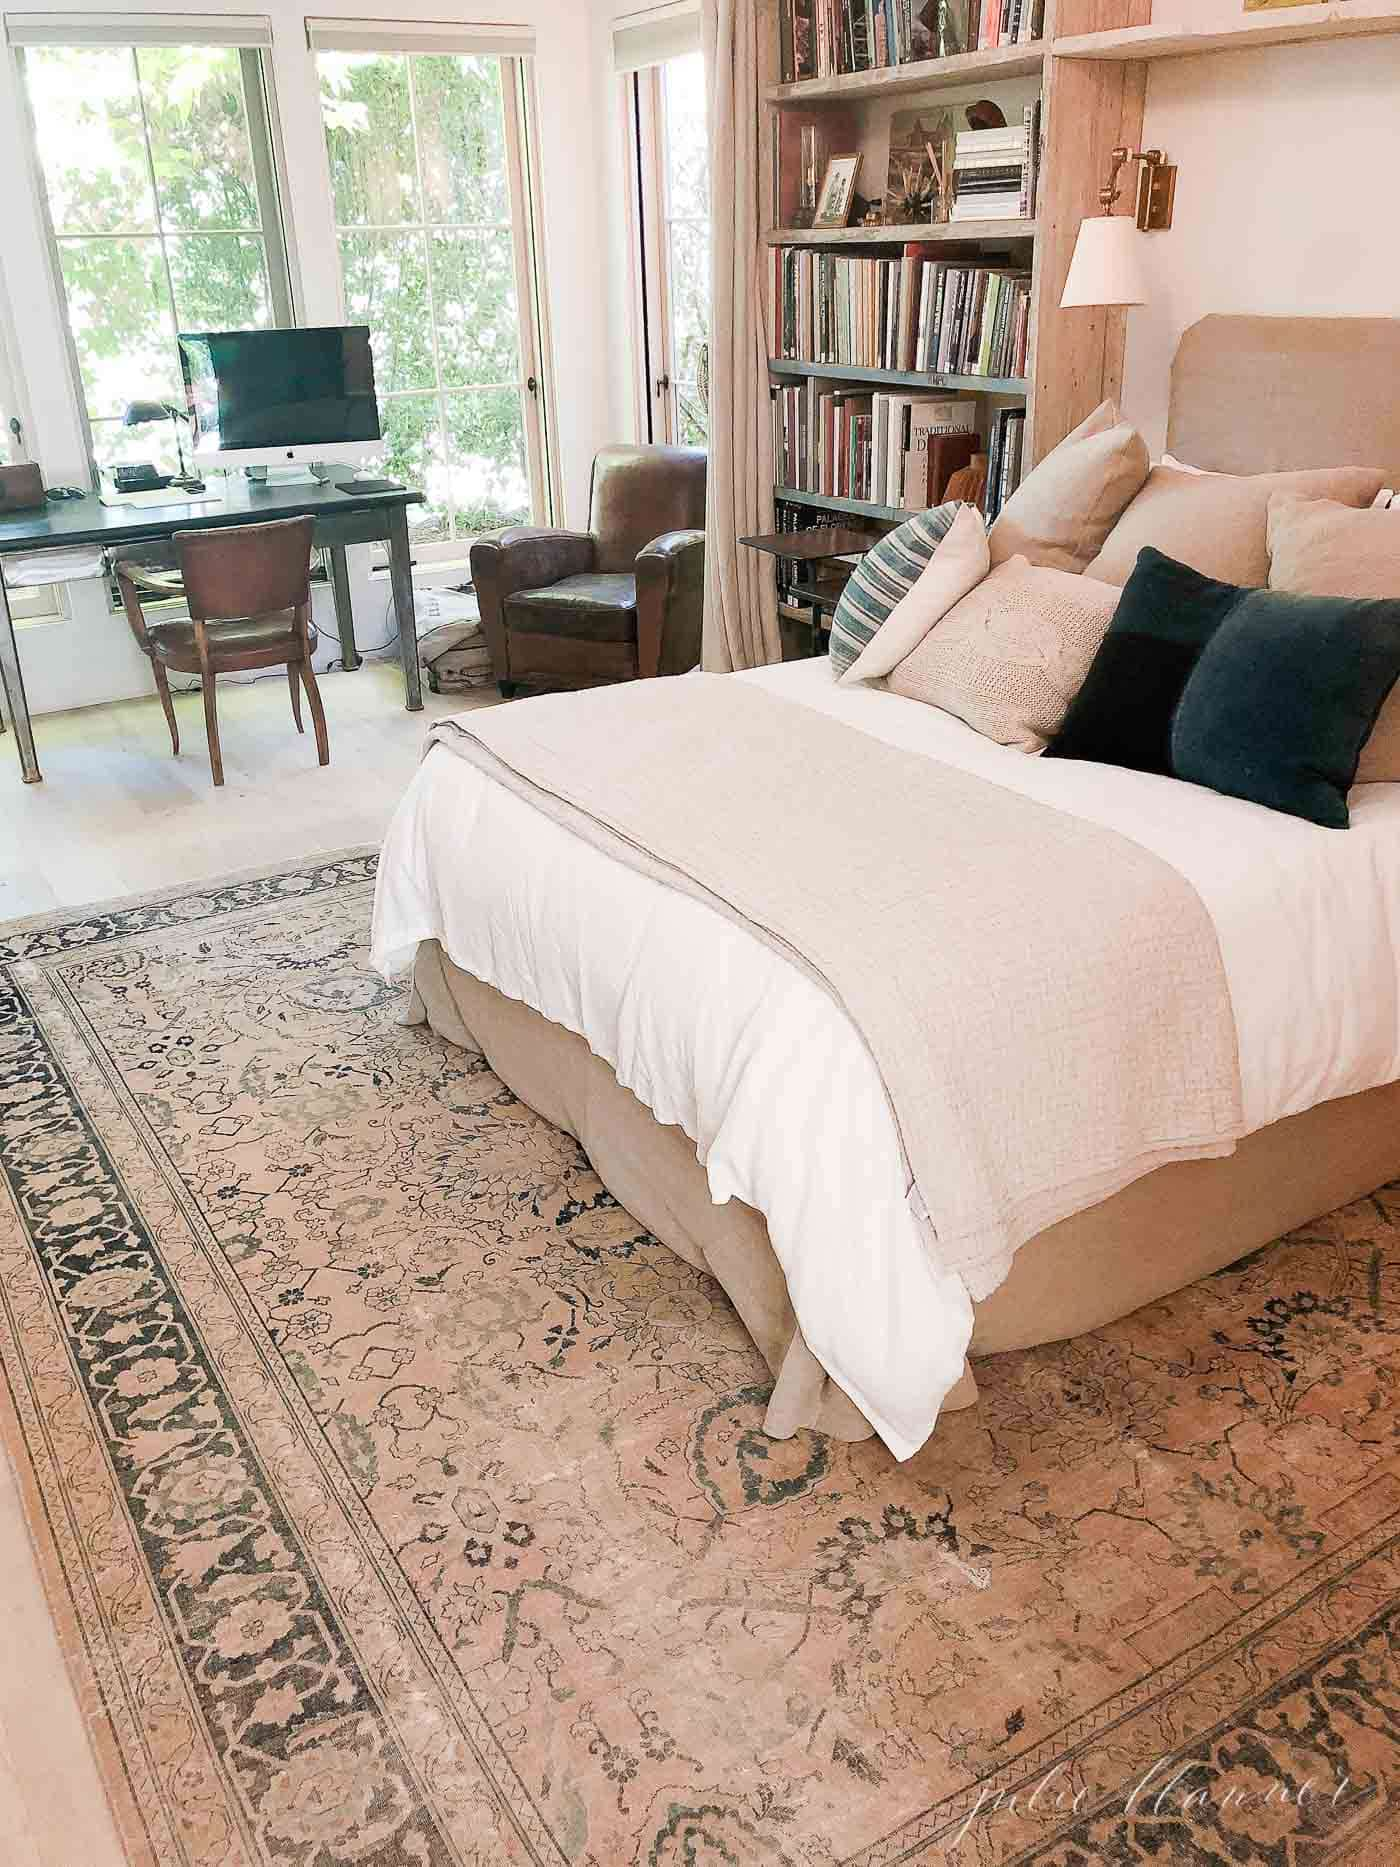 European farmhouse inspired bedroom with antique rug, bookshelves and linen bedding.